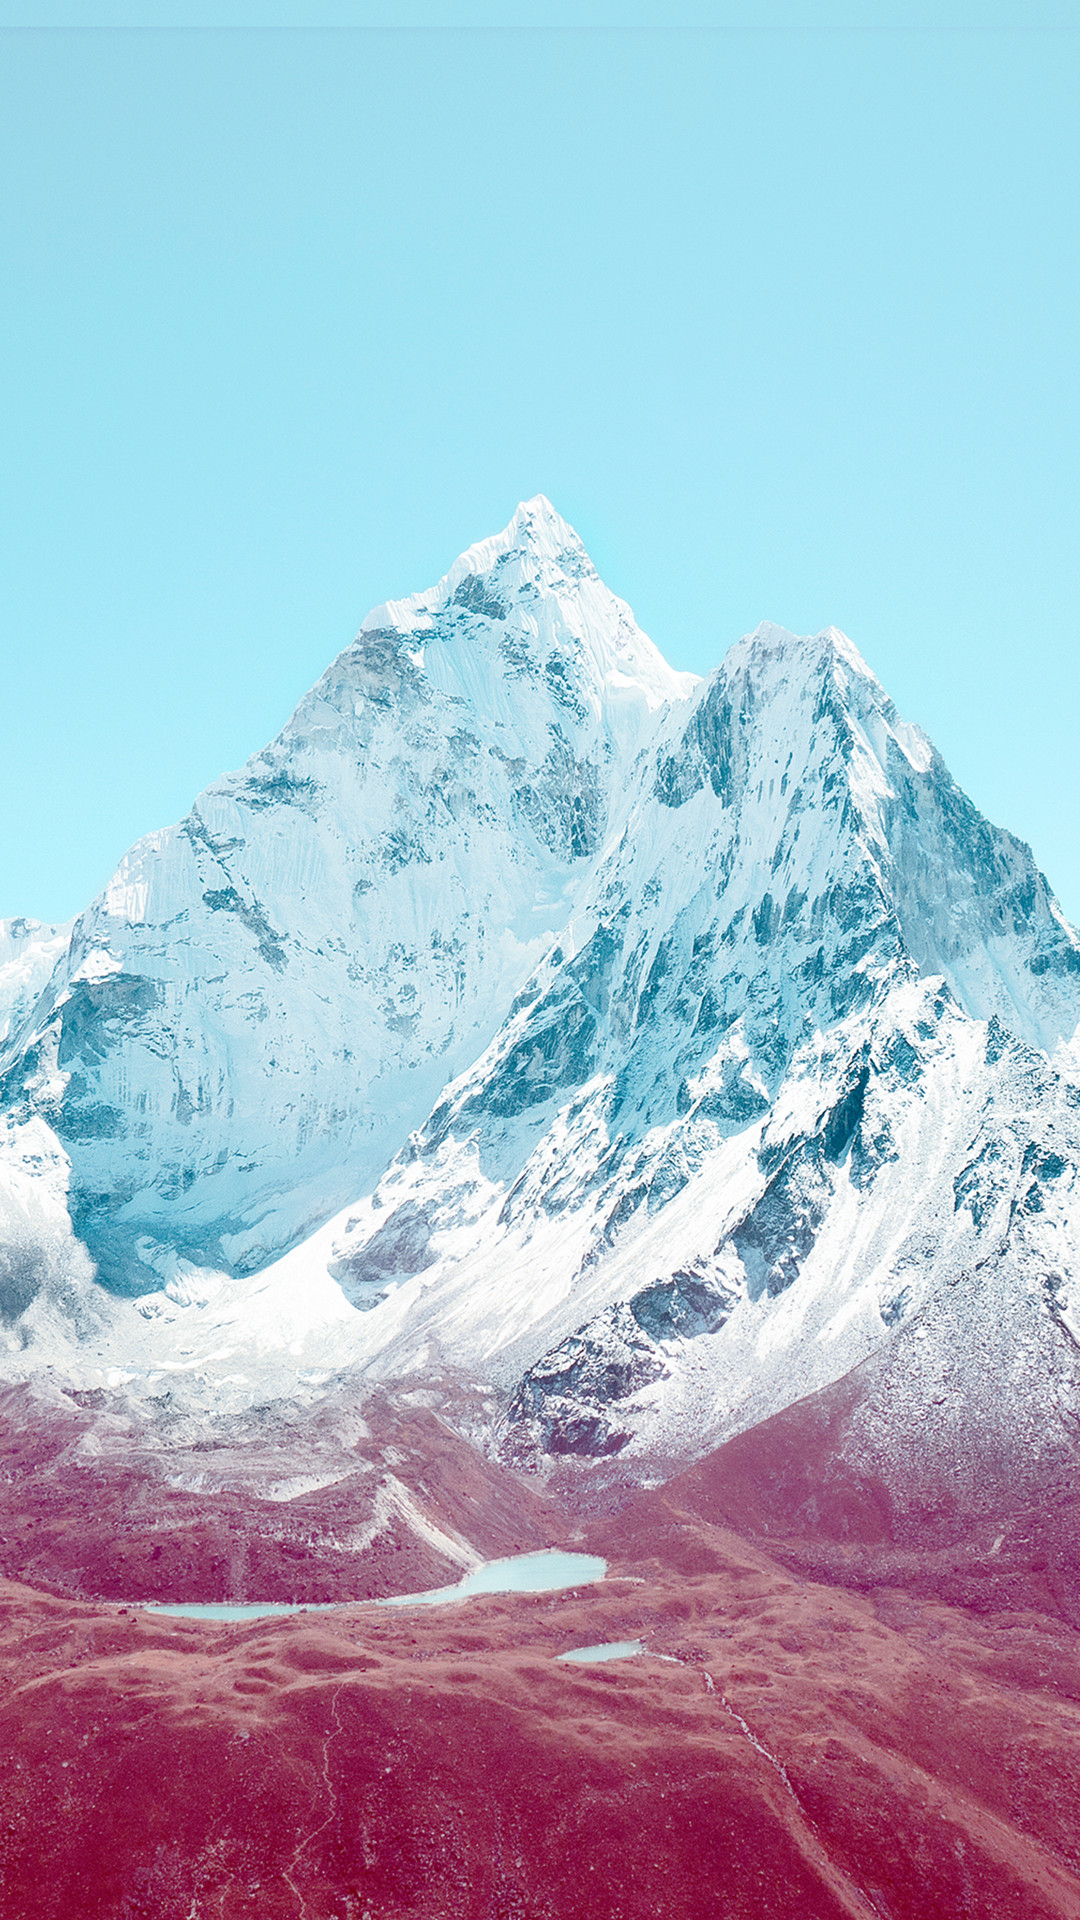 1080x1920 iOS 7 Mountains HTC hd wallpaper - Best htc one wallpapers